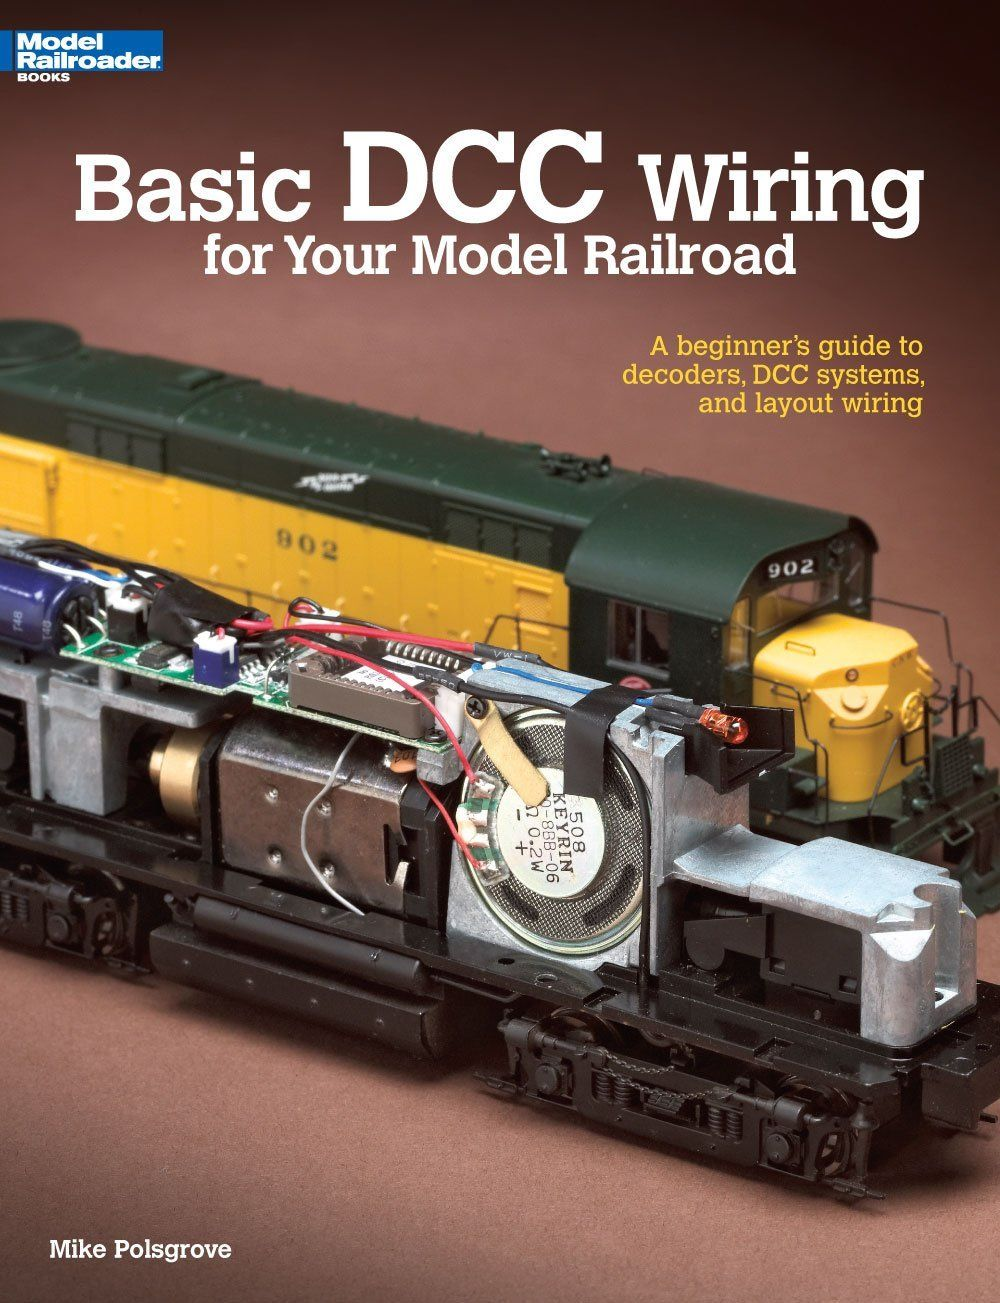 medium resolution of basic dcc wiring for your model railroad basic series